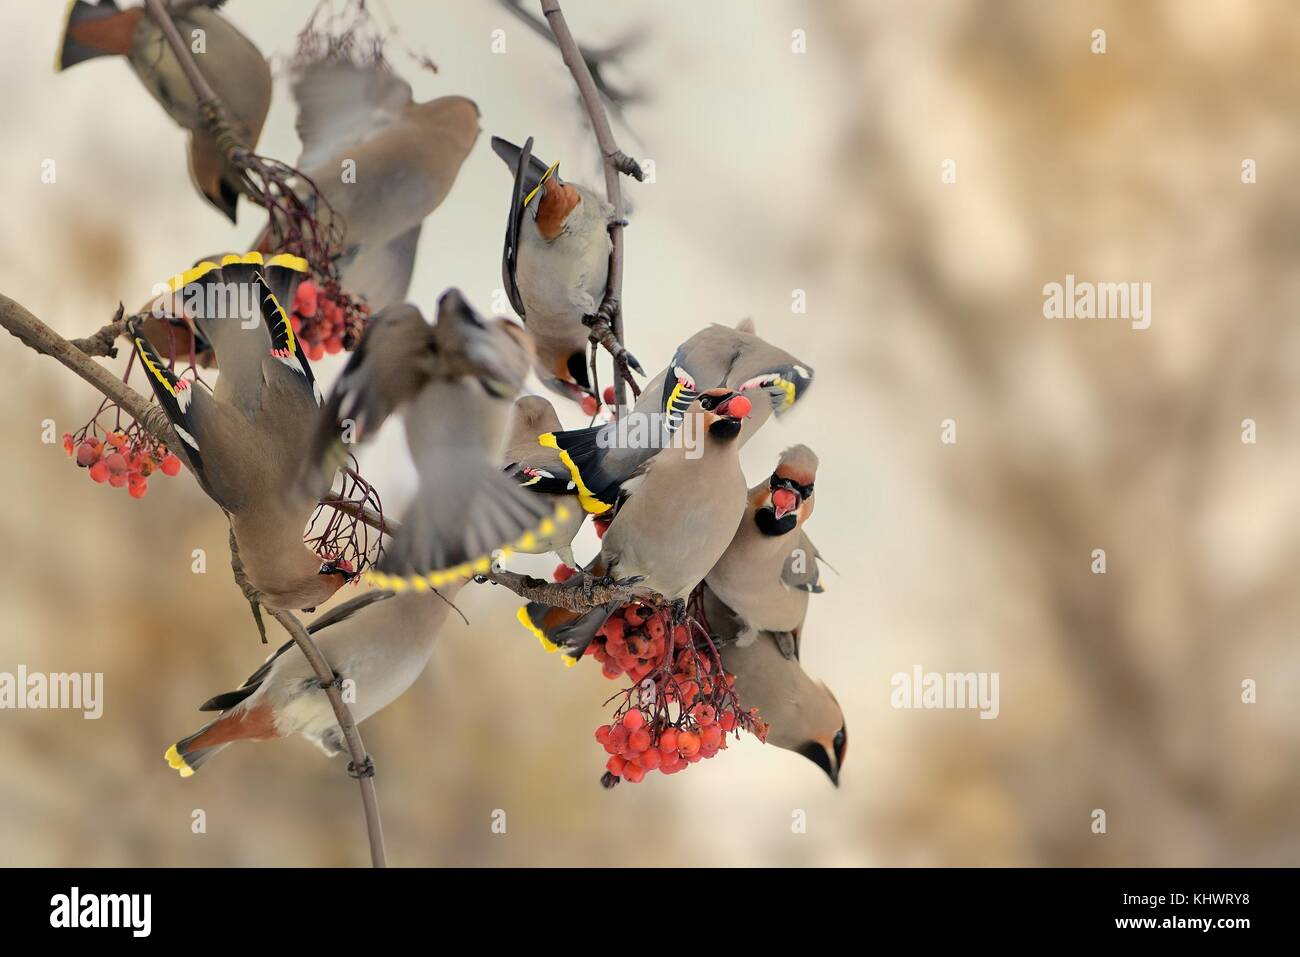 'Bohemian Waxwing - Bombycilla garrulus, the flock of the waxwings on the rowan tree in winter. - Stock Image